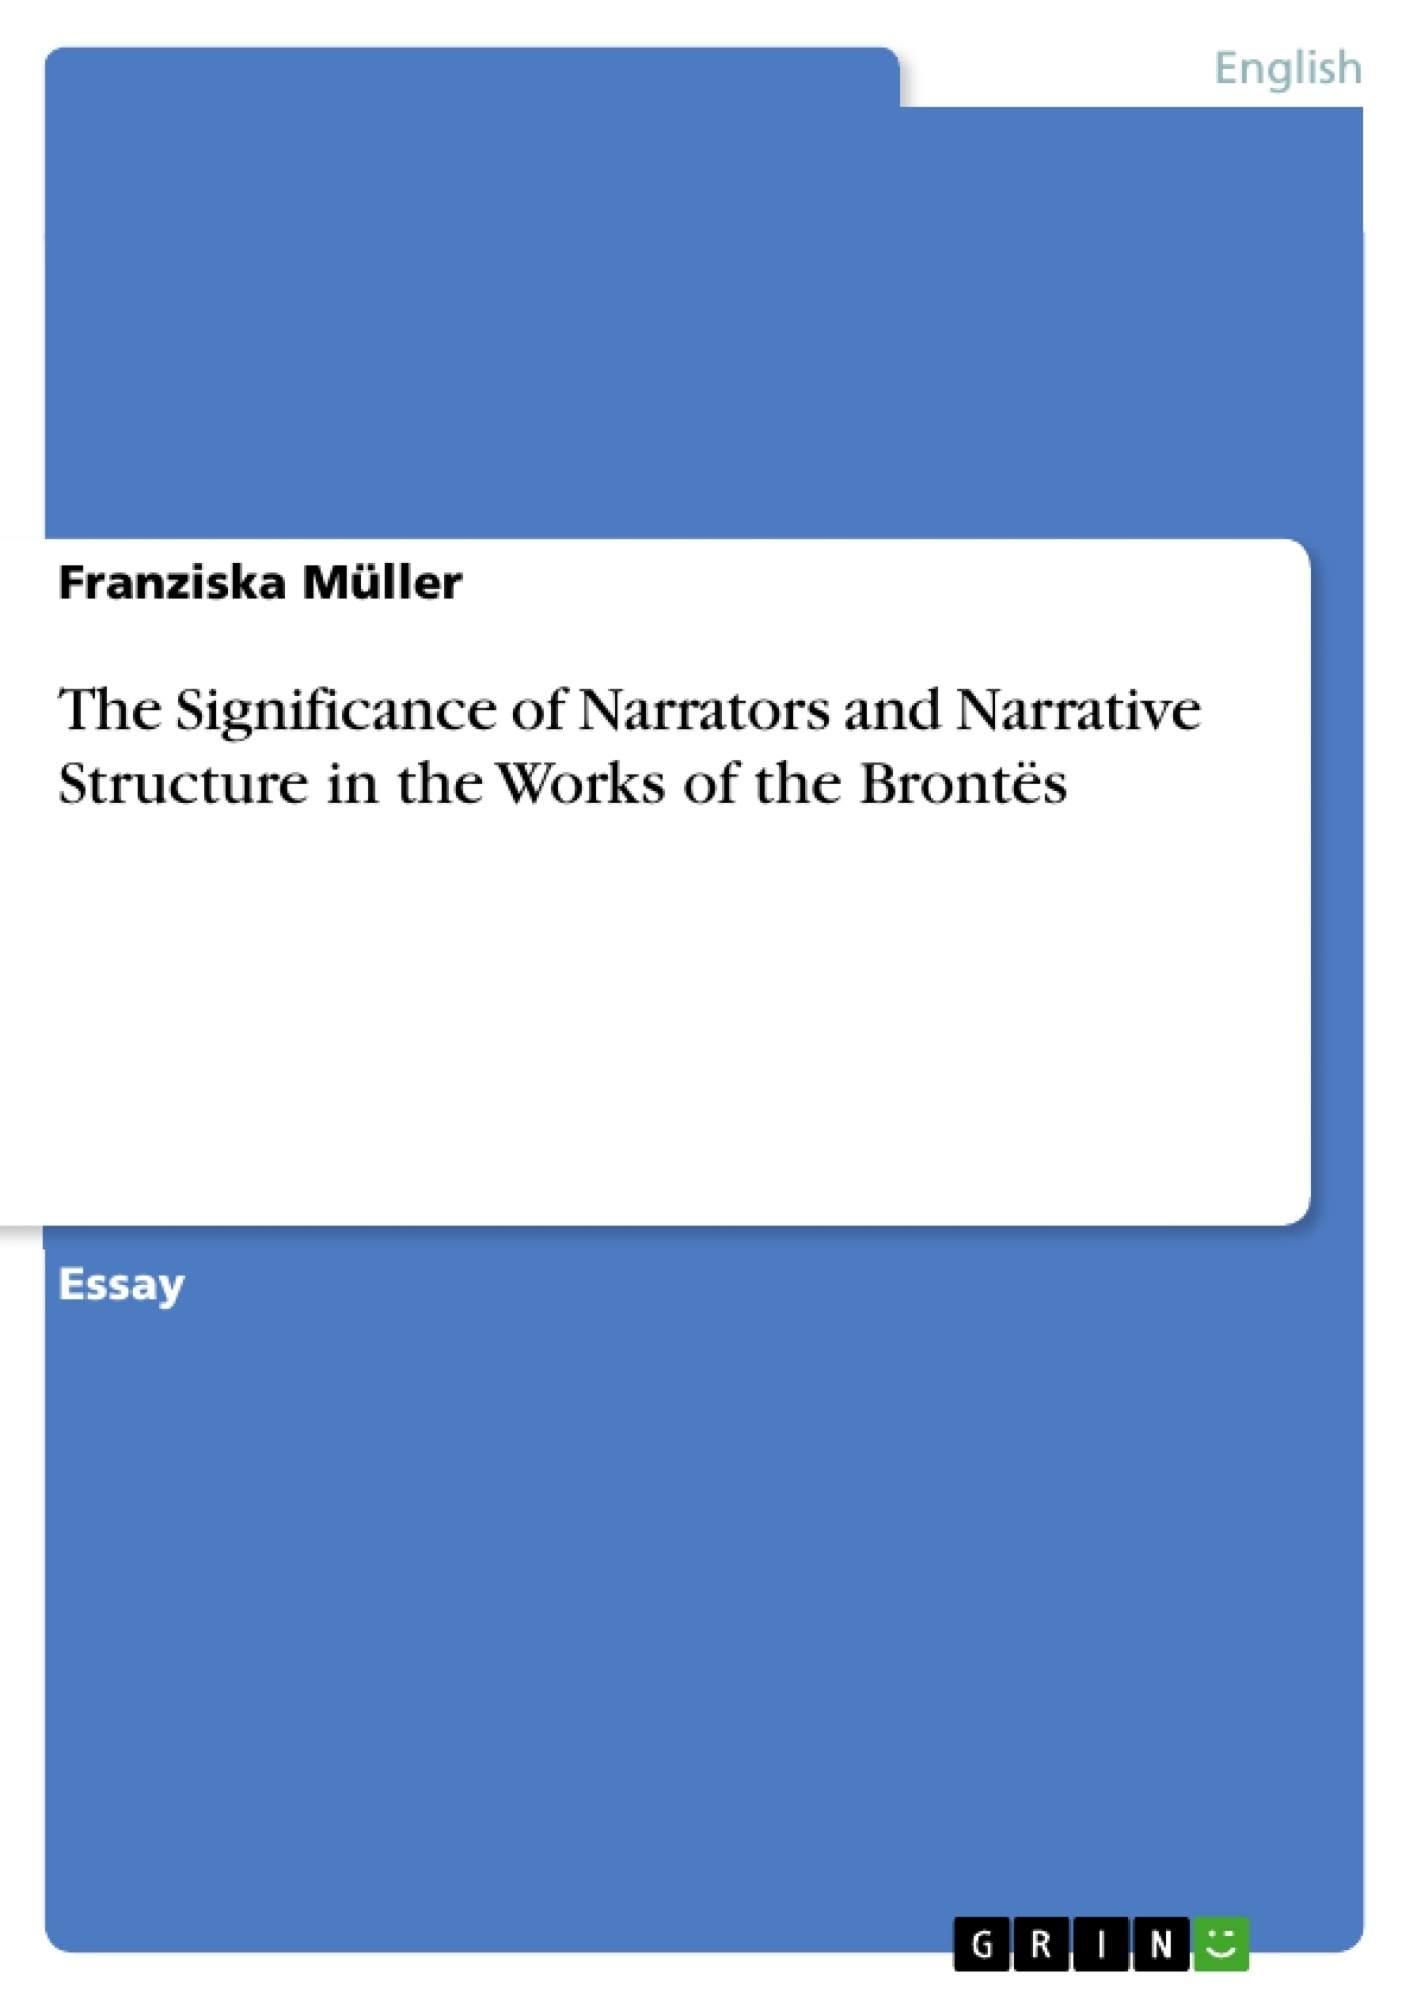 Title: The Significance of Narrators and Narrative Structure in the Works of the Brontës